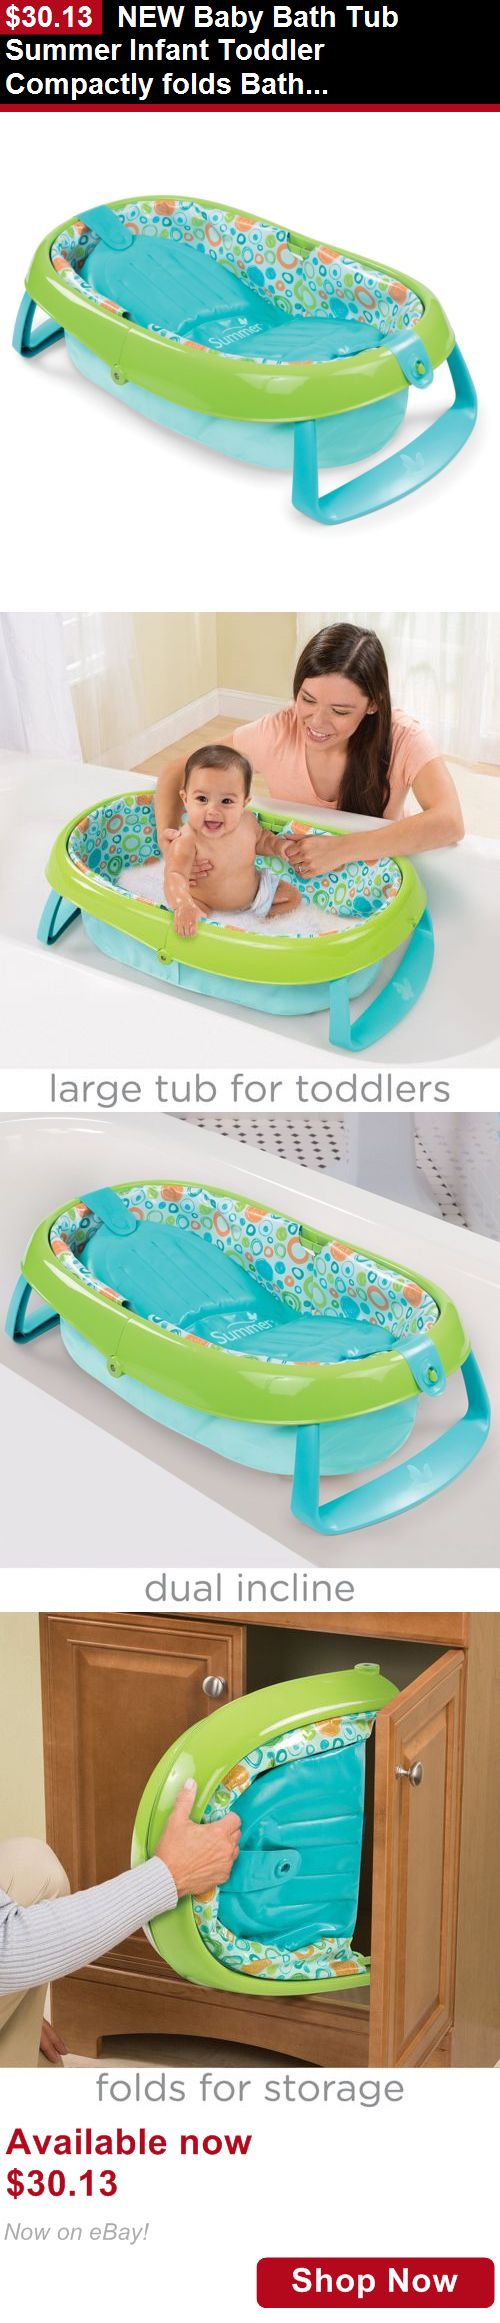 Baby Bath Tubs: New Baby Bath Tub Summer Infant Toddler Compactly Folds Bathroom Storage Travel BUY IT NOW ONLY: $30.13